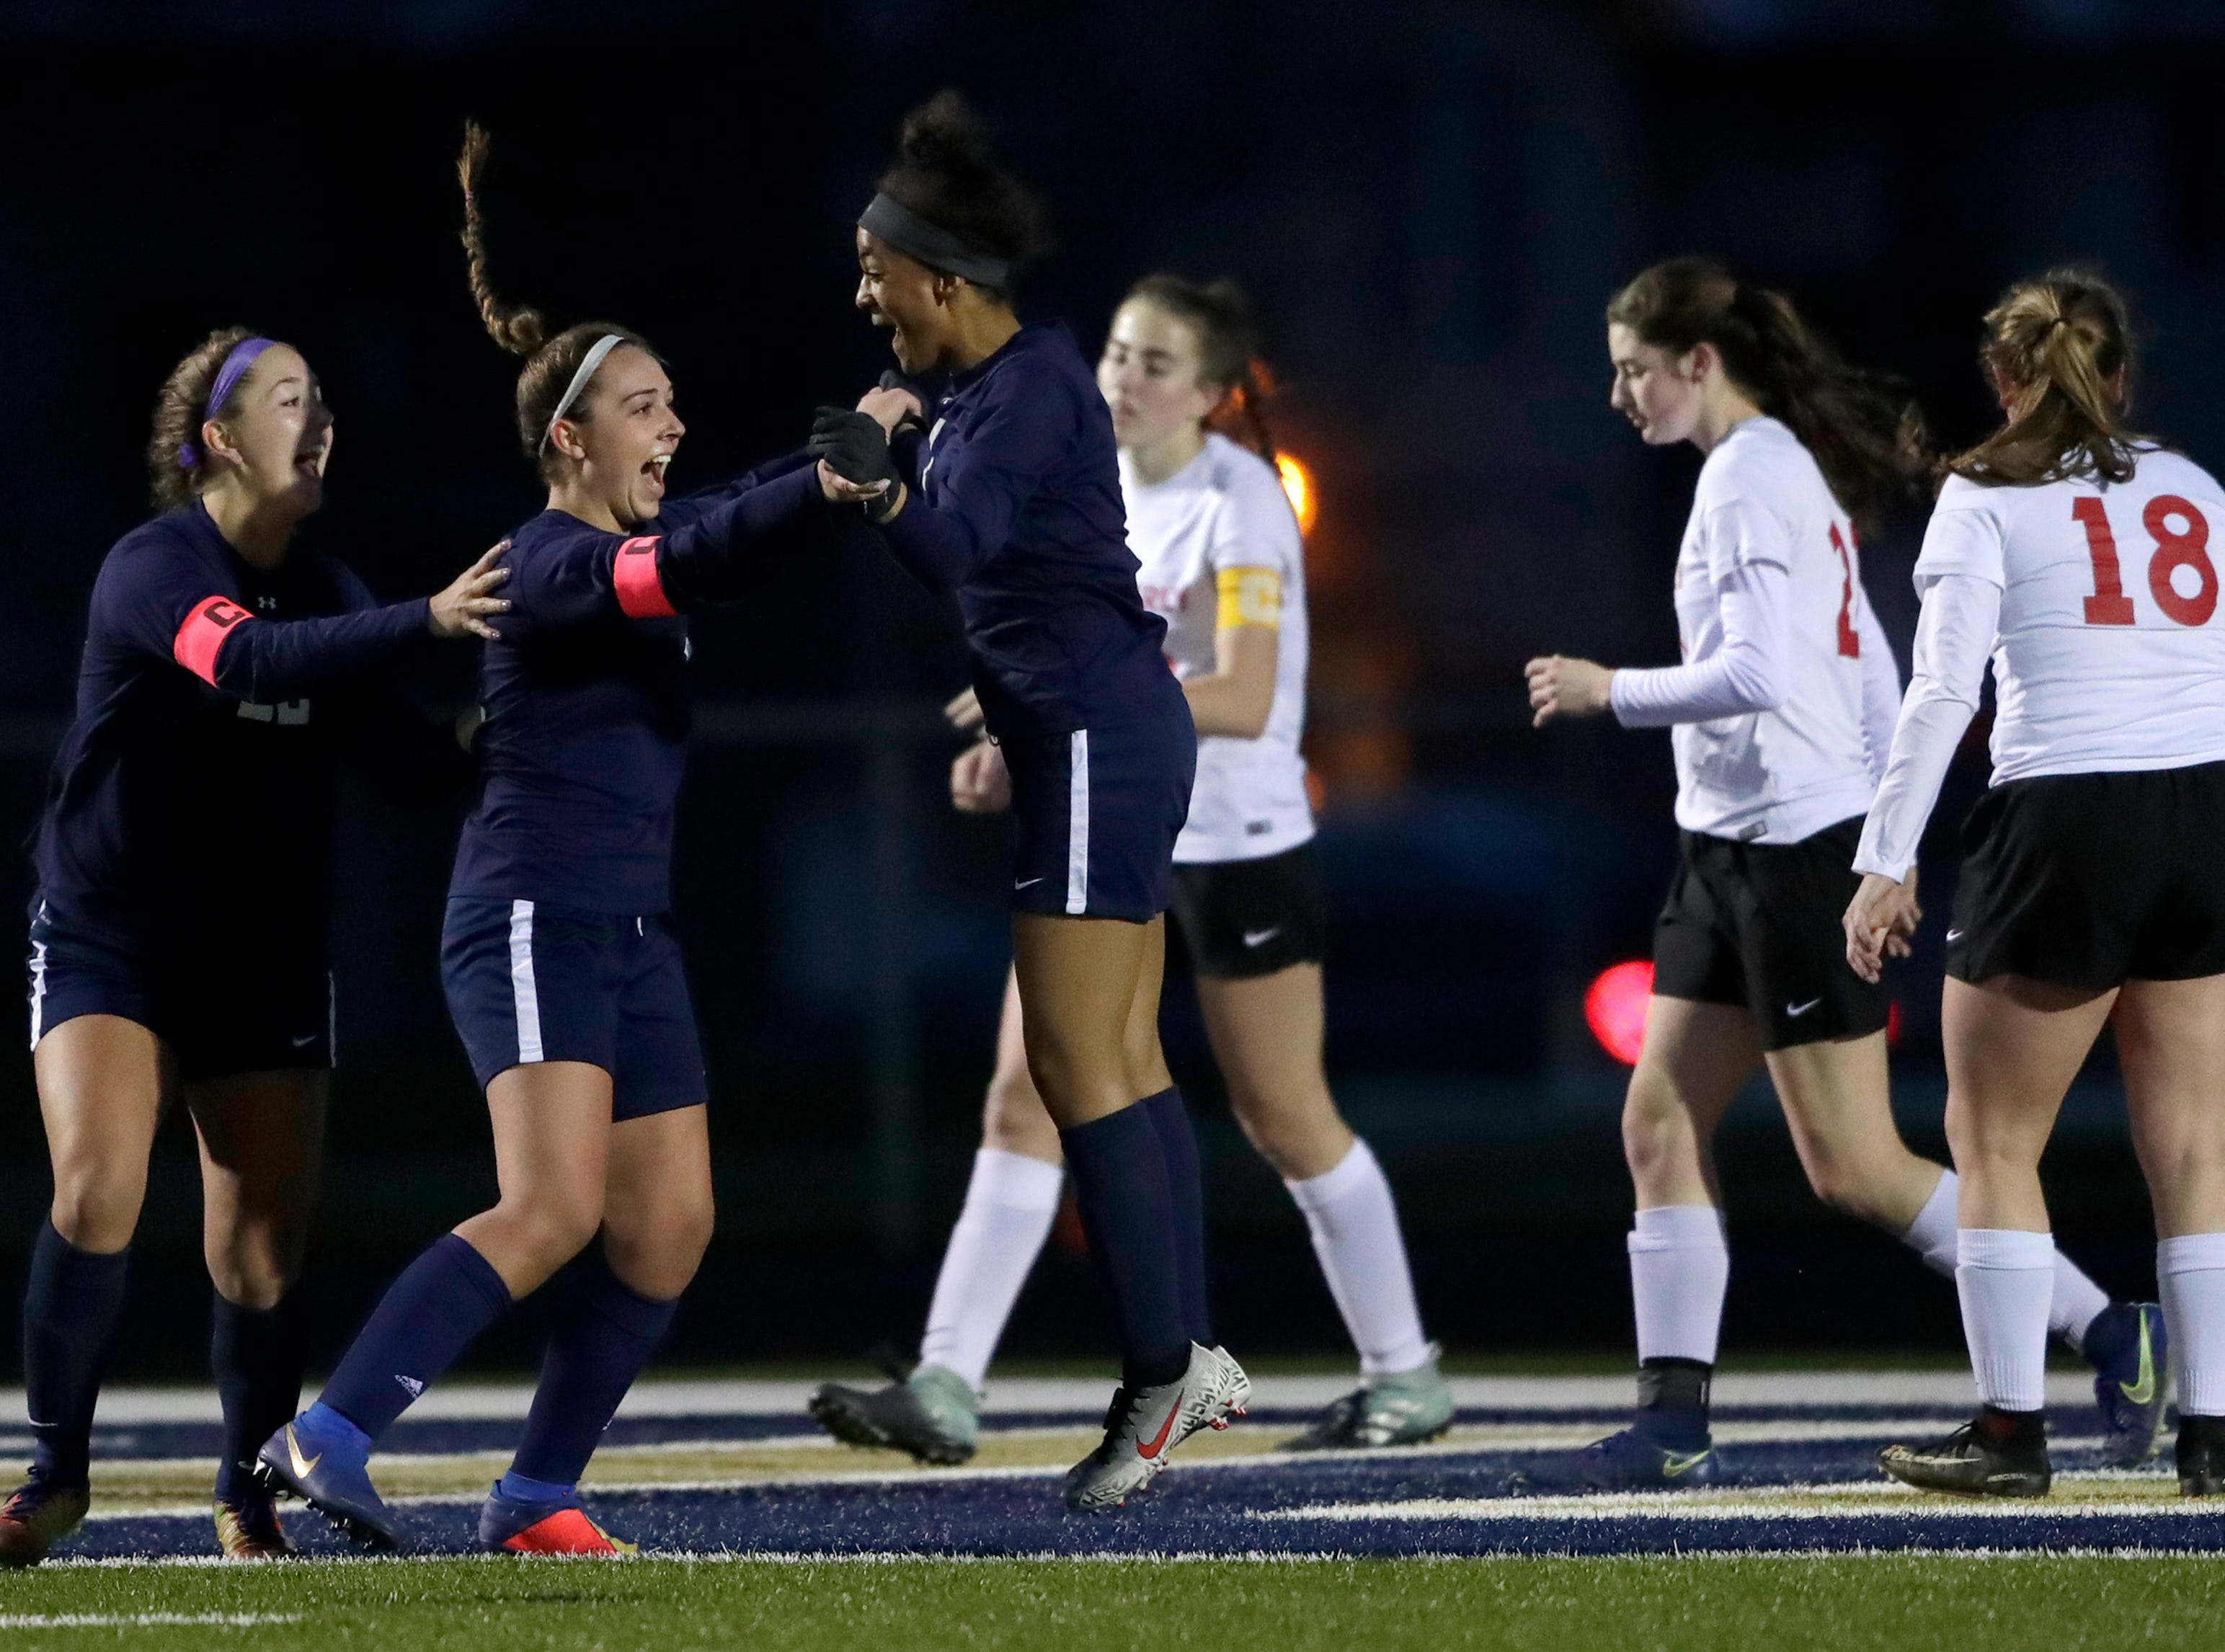 Appleton North High School's Abbie Schaefer, center, celebrates scoring a goal with teammates Taylor Tomoda, left, and Izzie Ruzzicone, right, against Kimberly High School during their girls soccer game Thursday, May 9, 2019, in Appleton, Wis. 